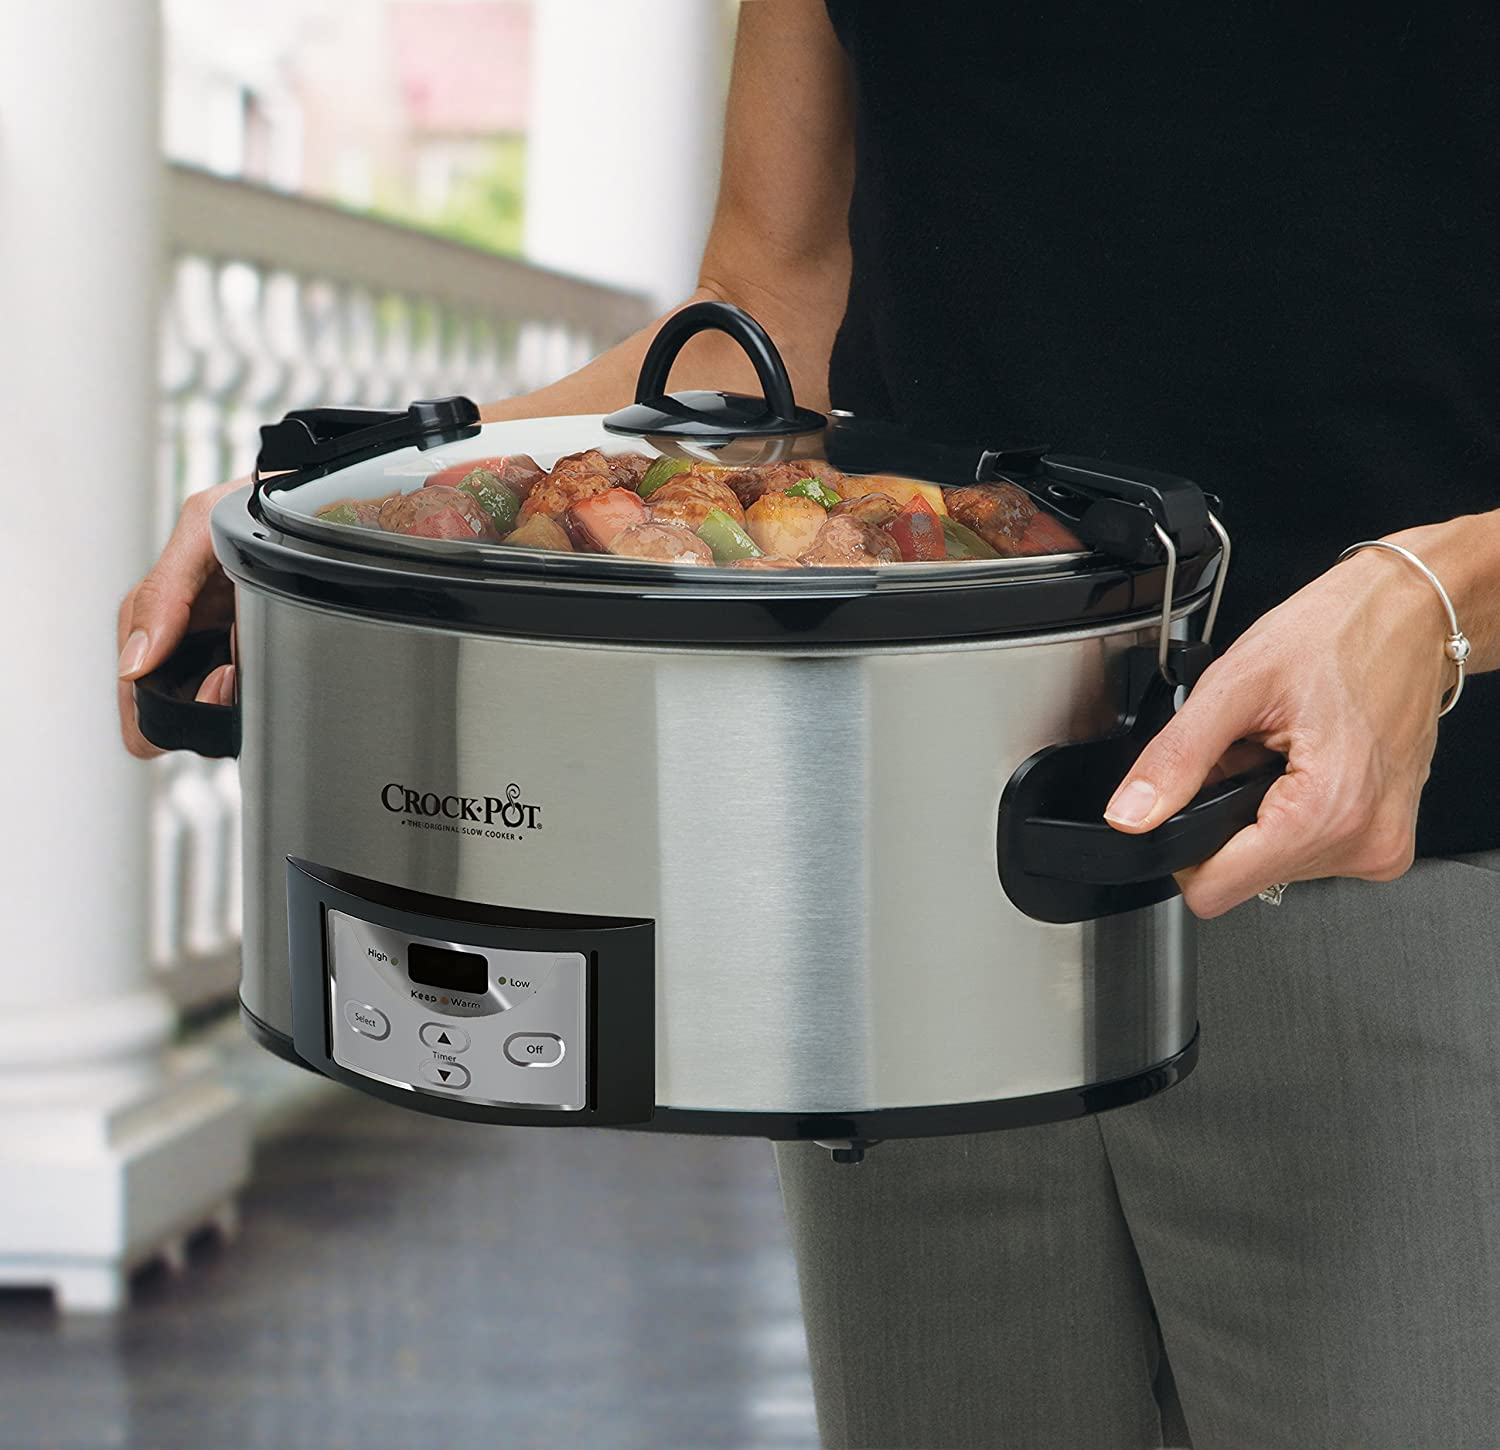 Crock-Pot Programmable Cook & Carry Slow Cooker (6 qt)